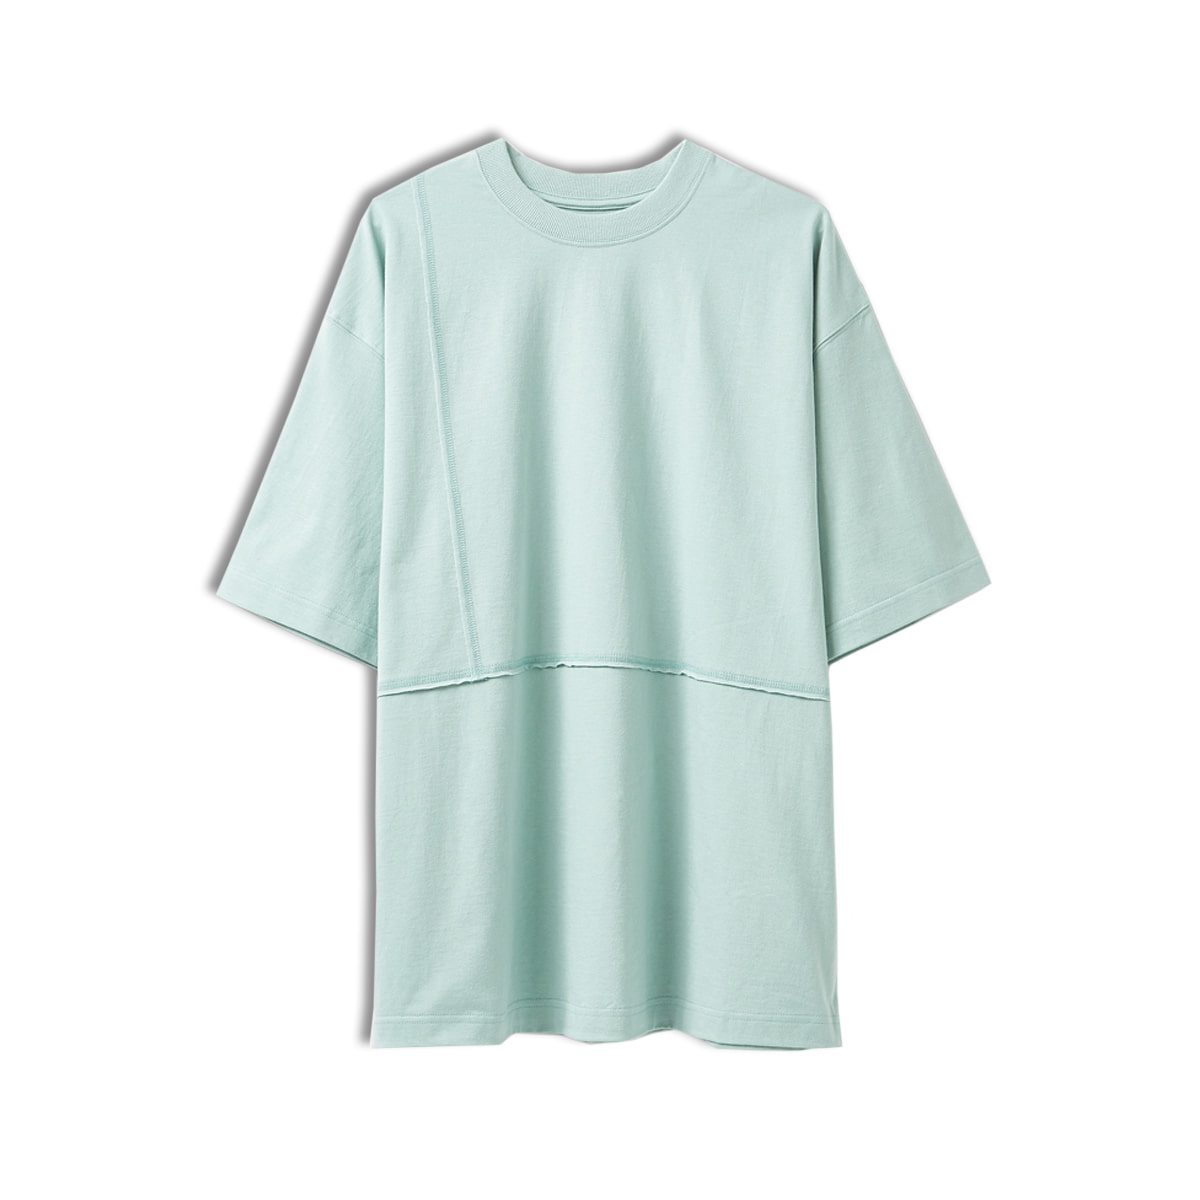 [YOUTH] CUT OFF T-SHIRT 'MINT'